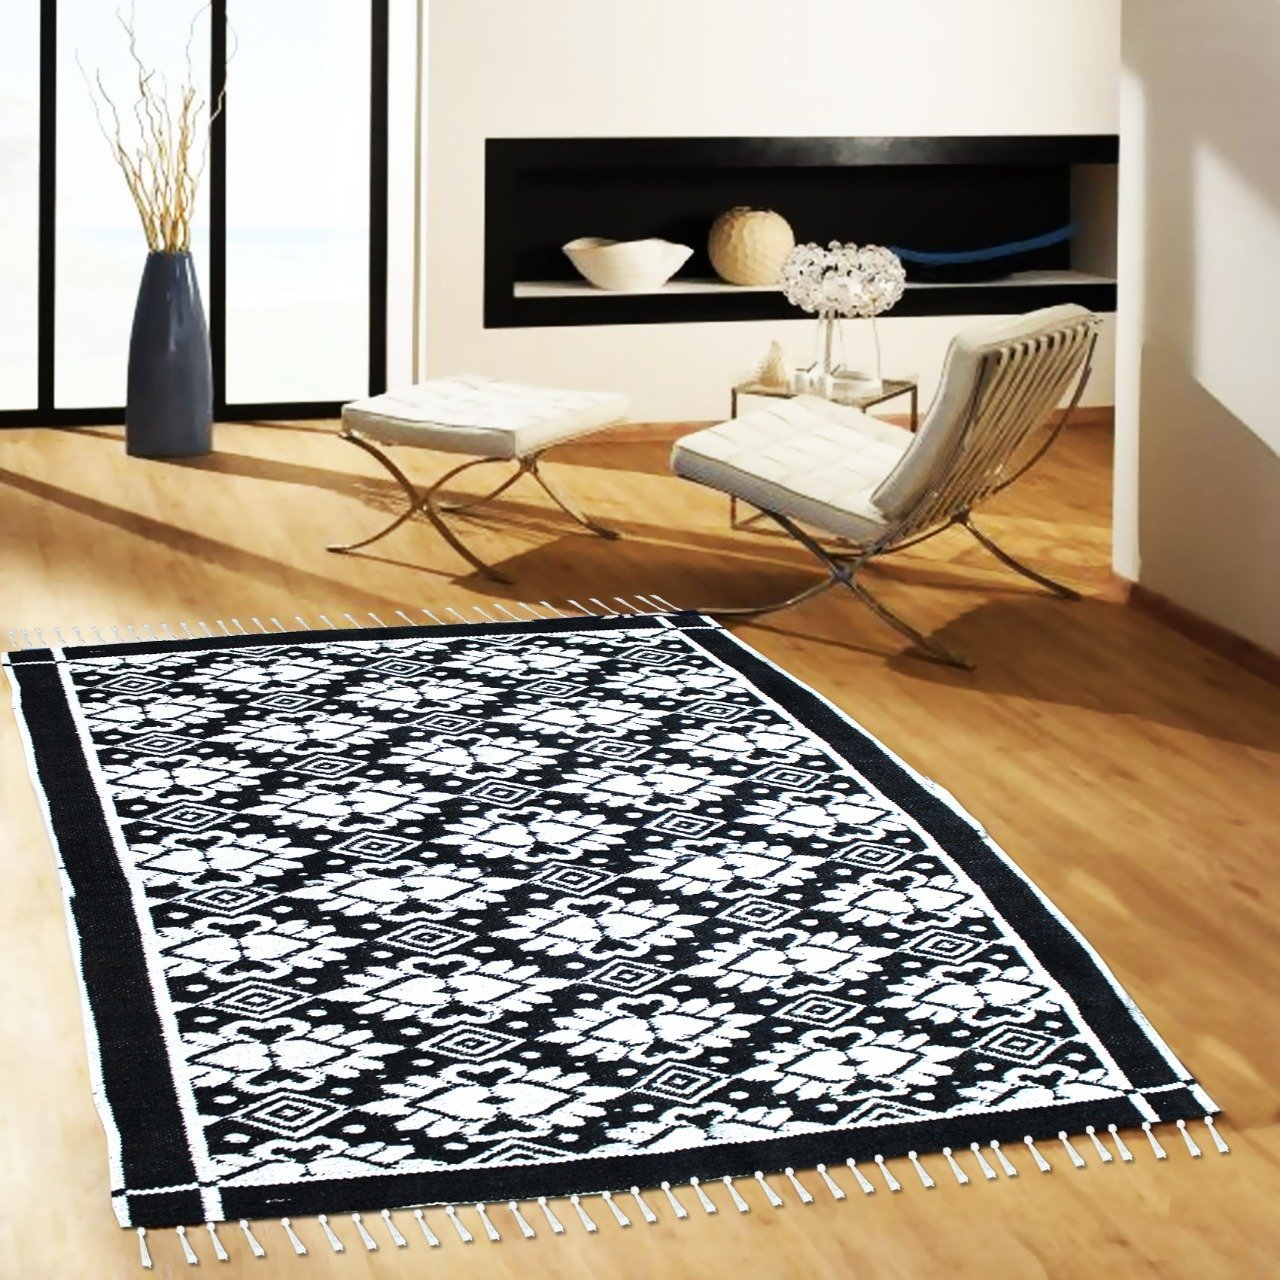 Floral - Hand-woven Woolen Rug - Double Seam - 4' x 6' - waseeh.com